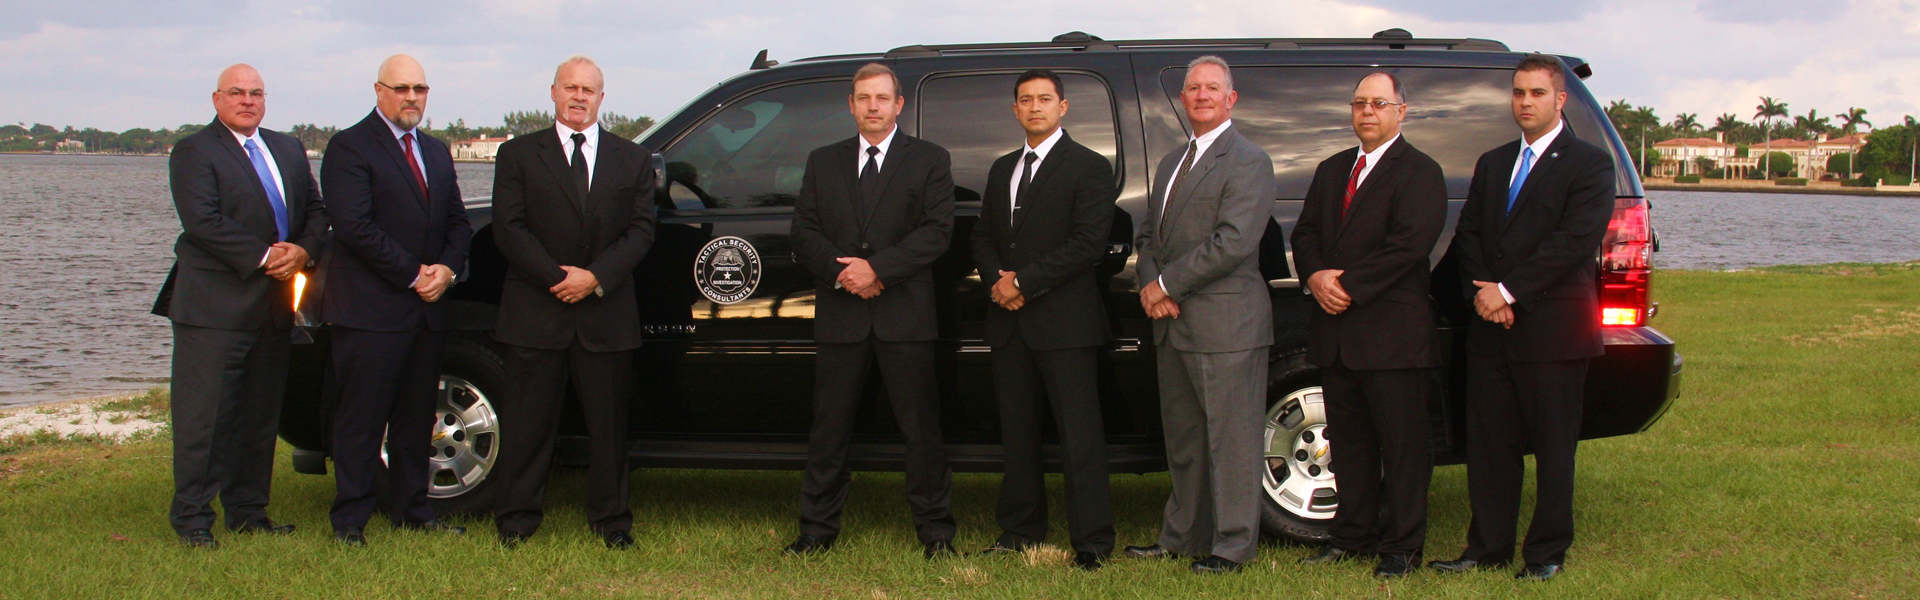 Welcome to Tactical Security Consultants